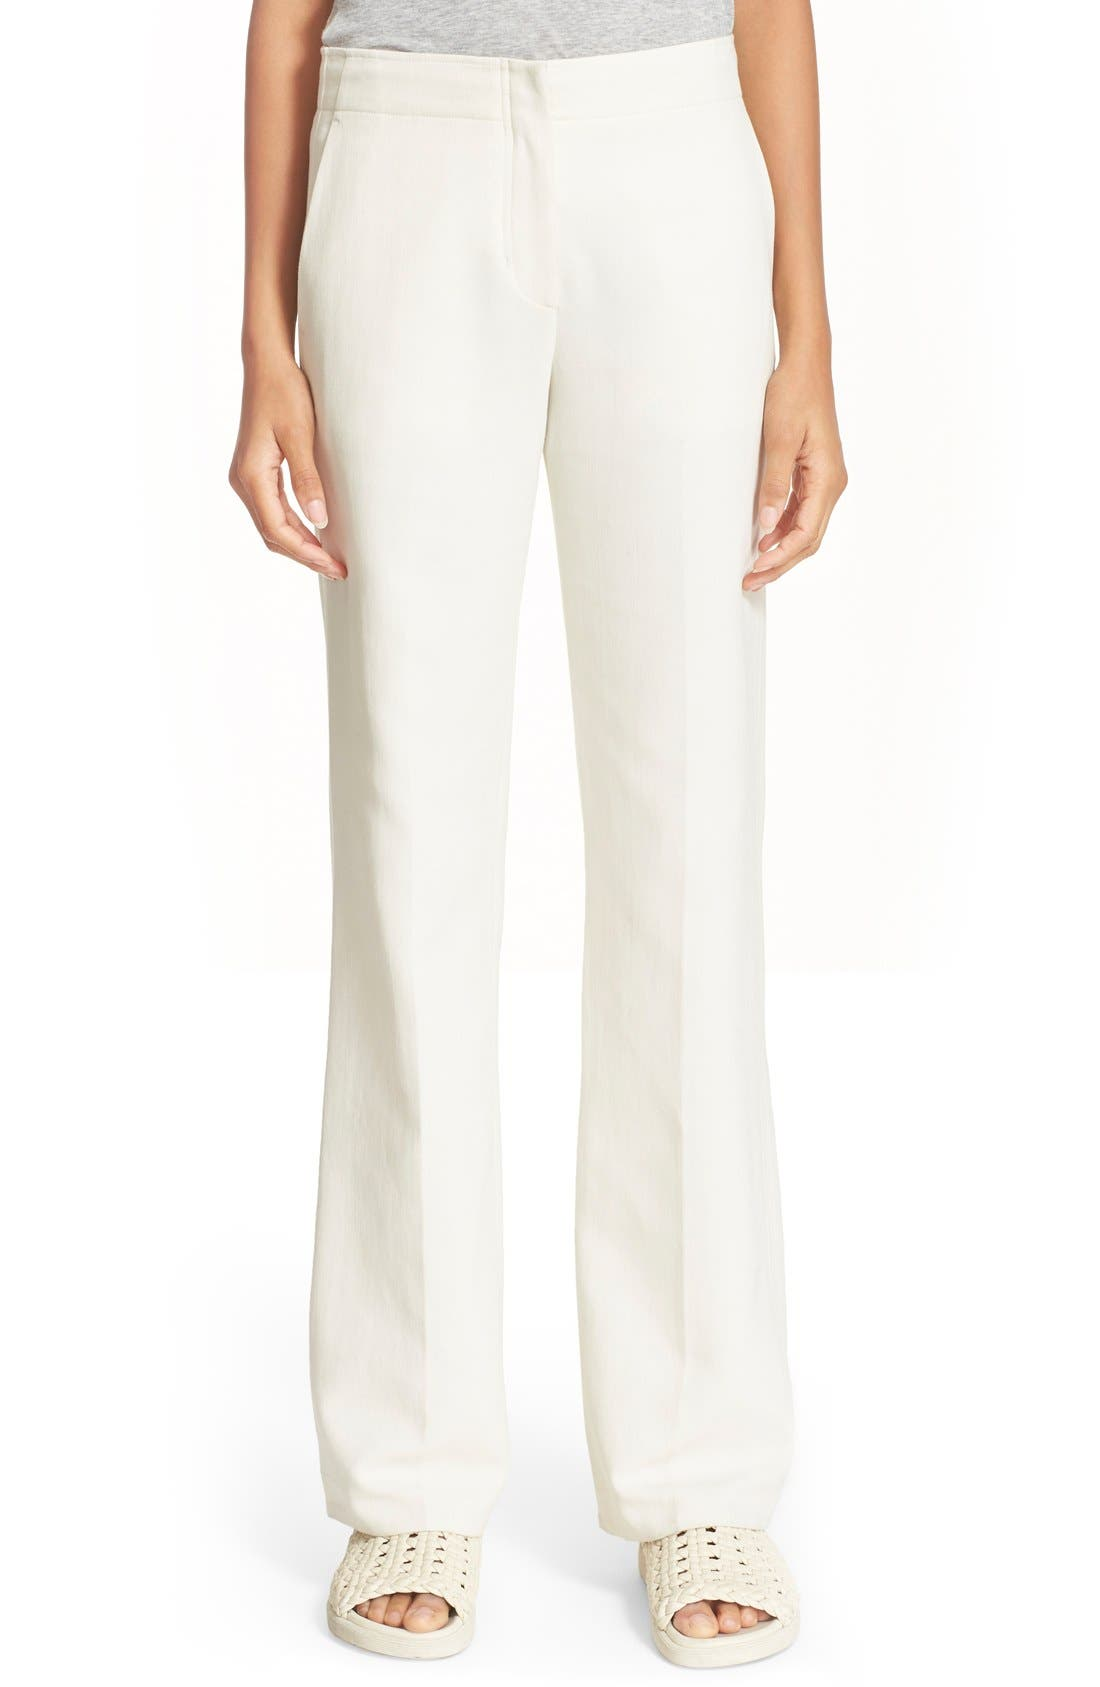 Cotton Flare Pants,                             Main thumbnail 1, color,                             900